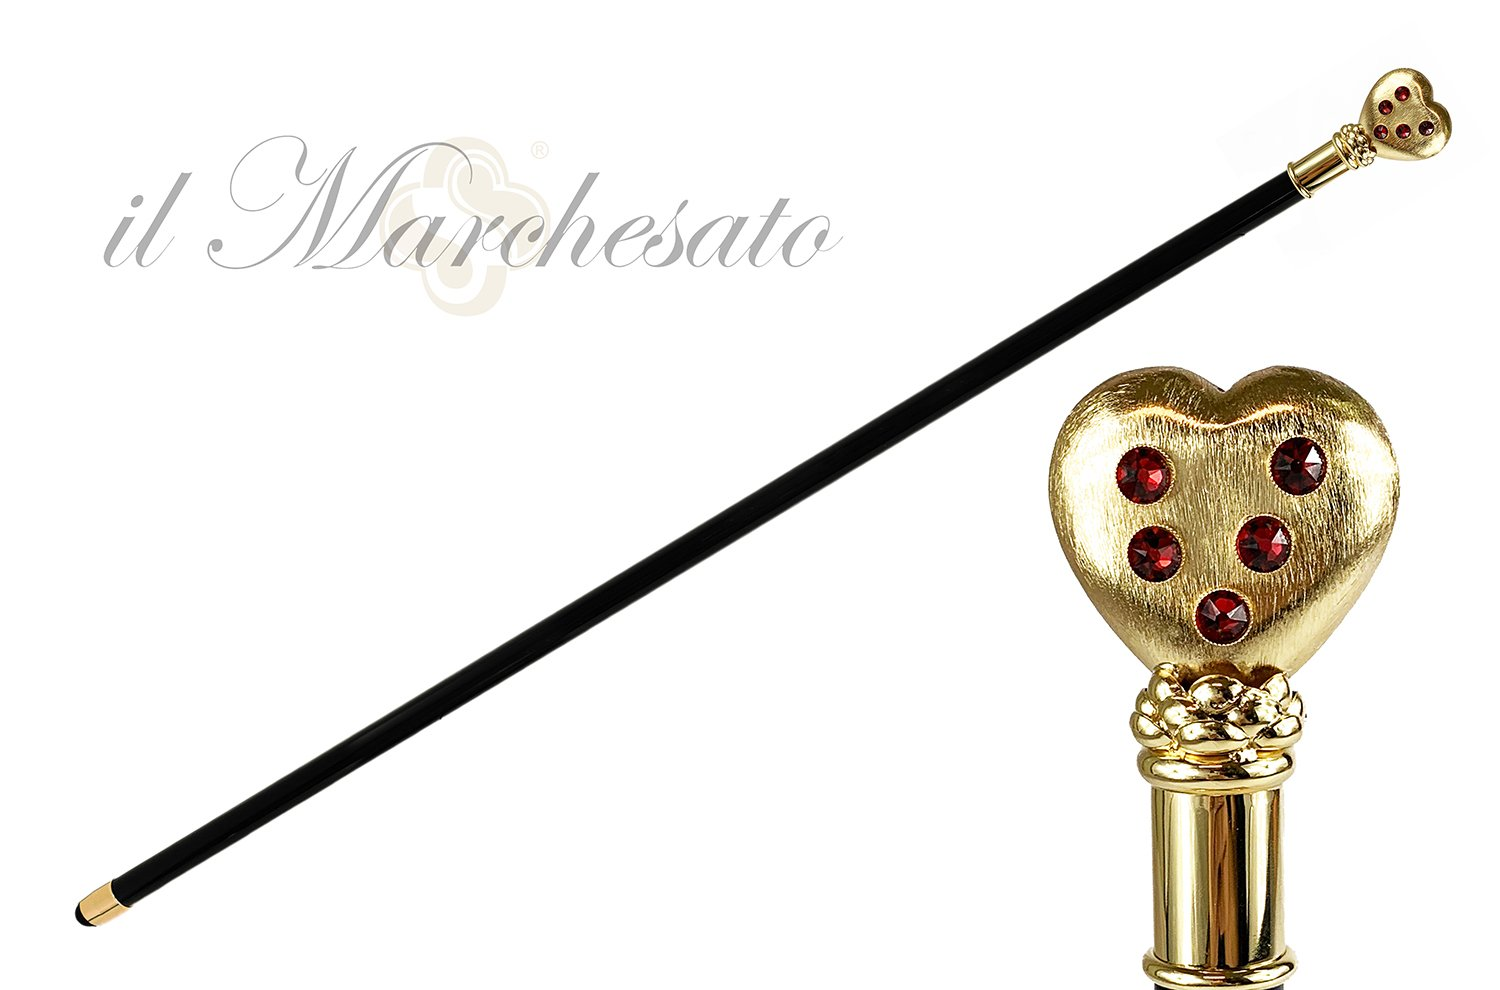 Collectible stick with 24K goldplated heart - IL MARCHESATO LUXURY UMBRELLAS, CANES AND SHOEHORNS